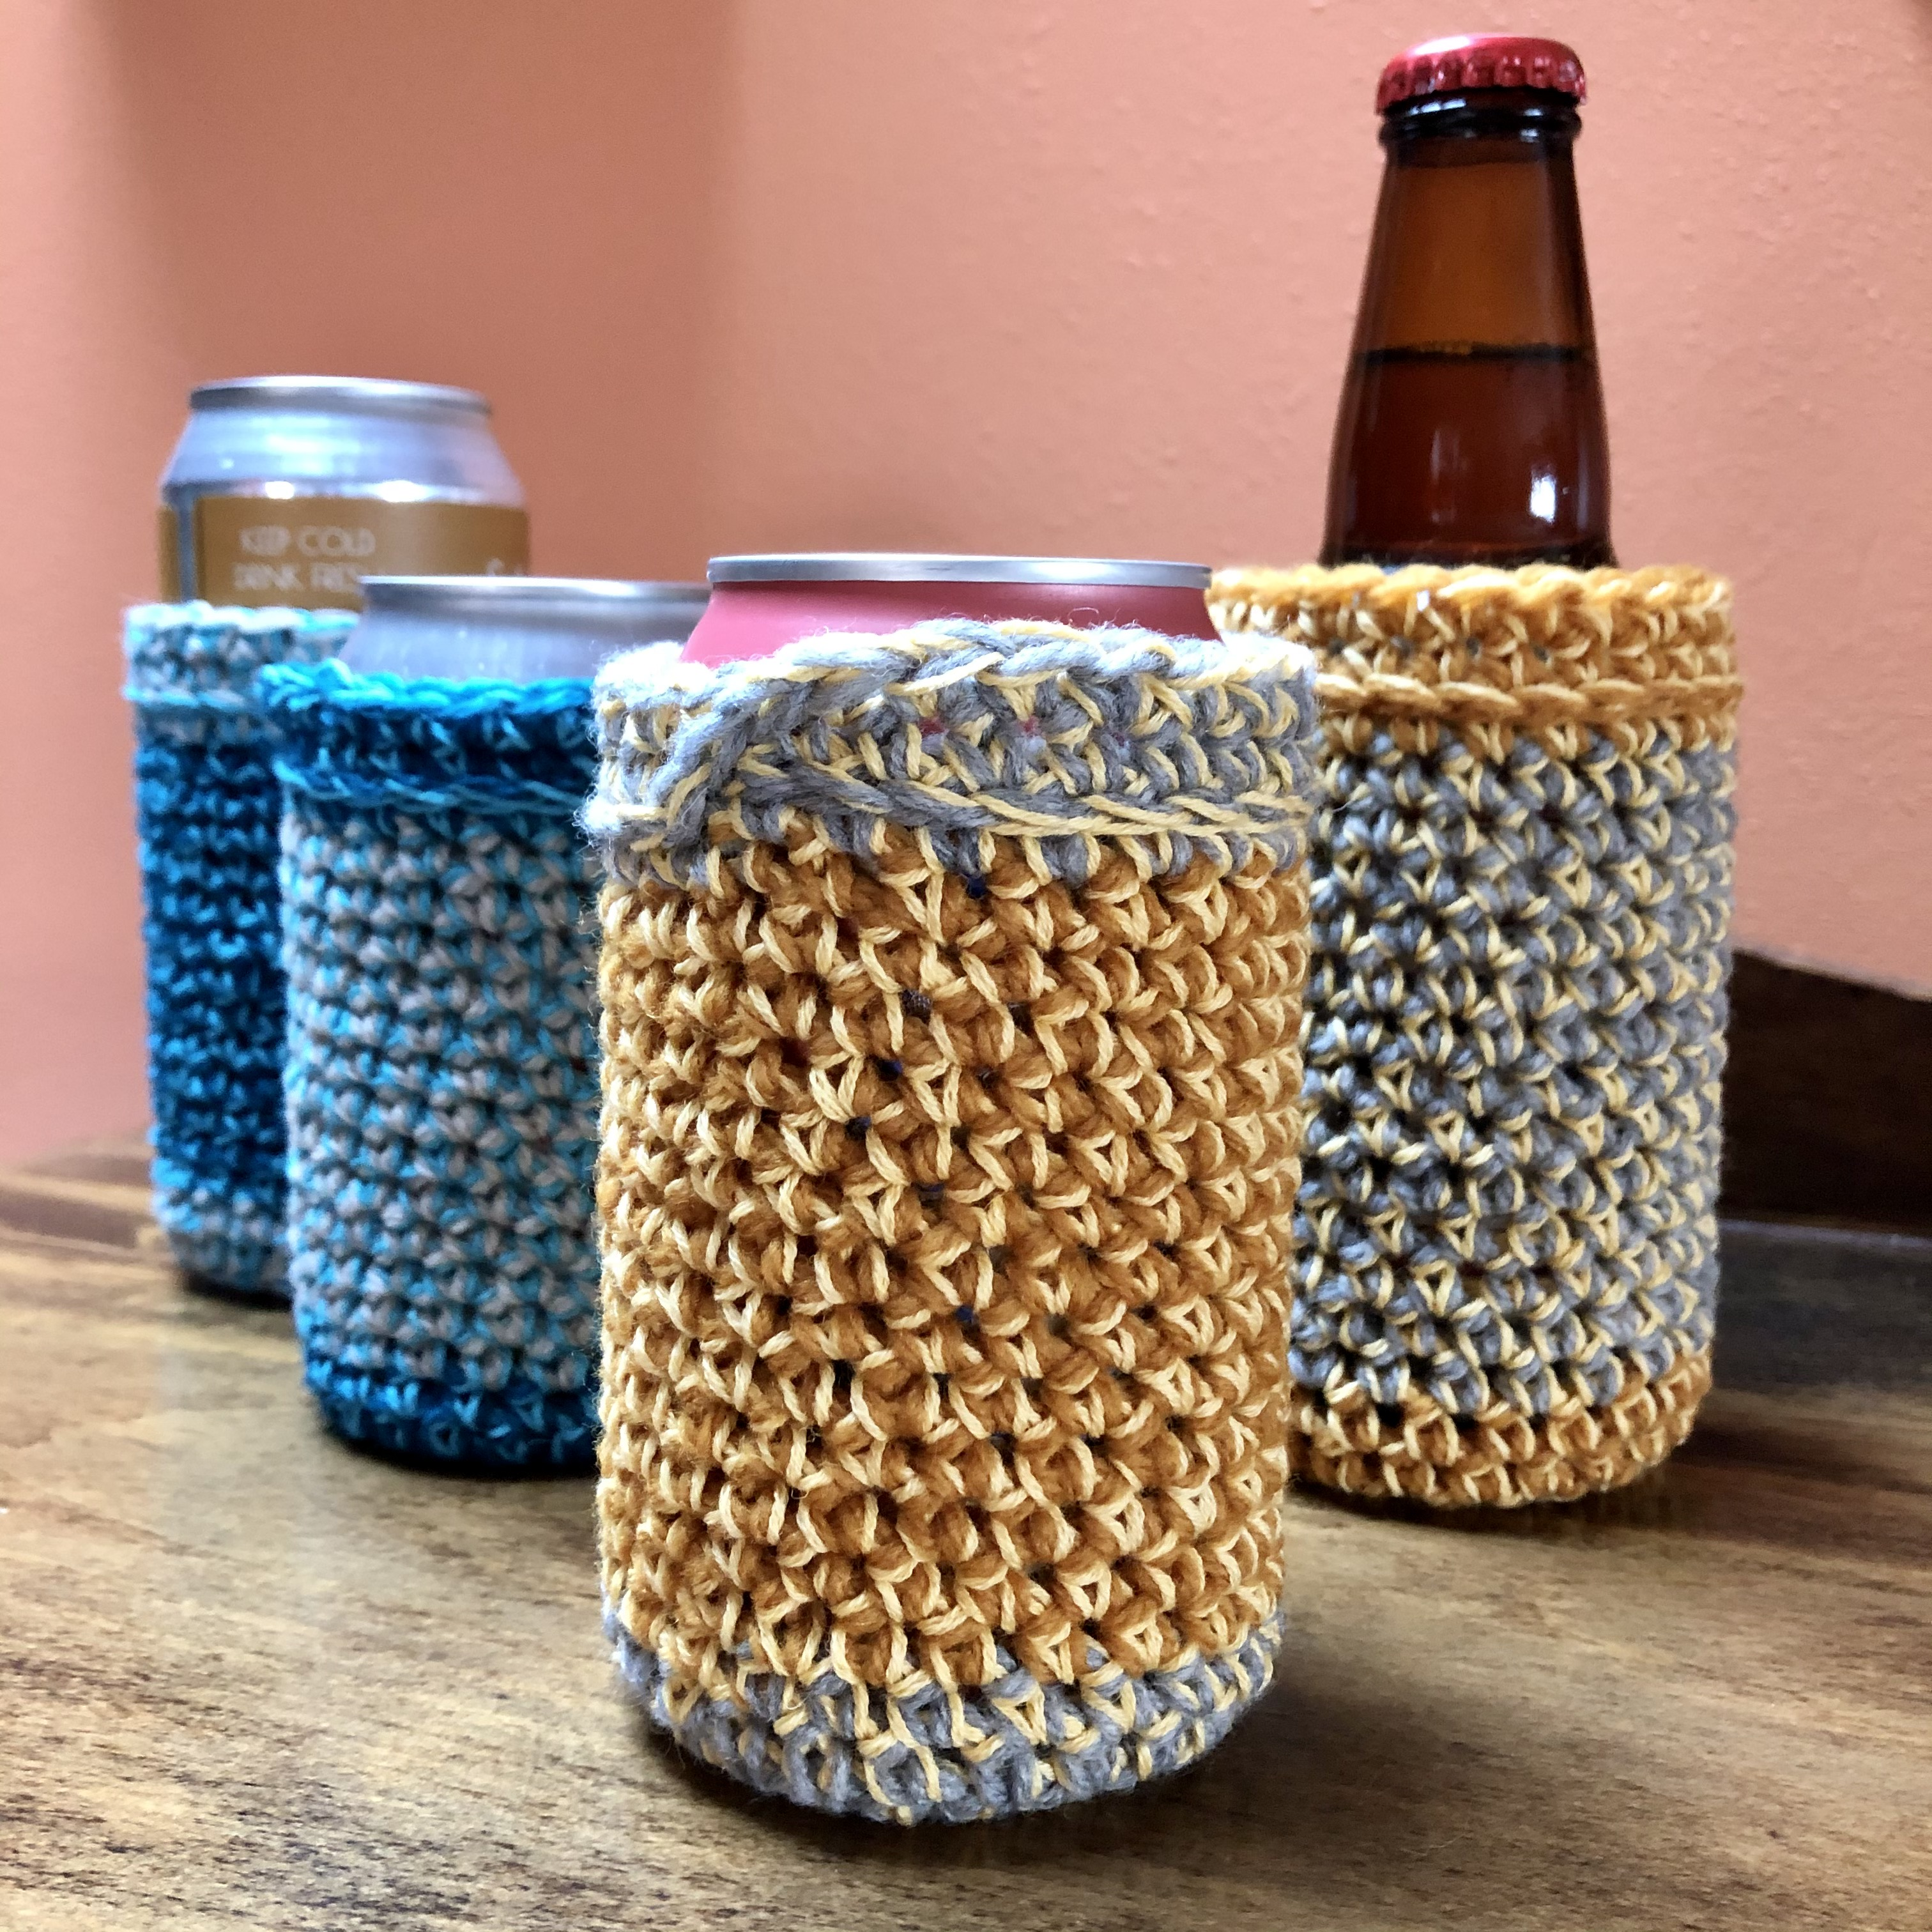 Four can/bottle koozies